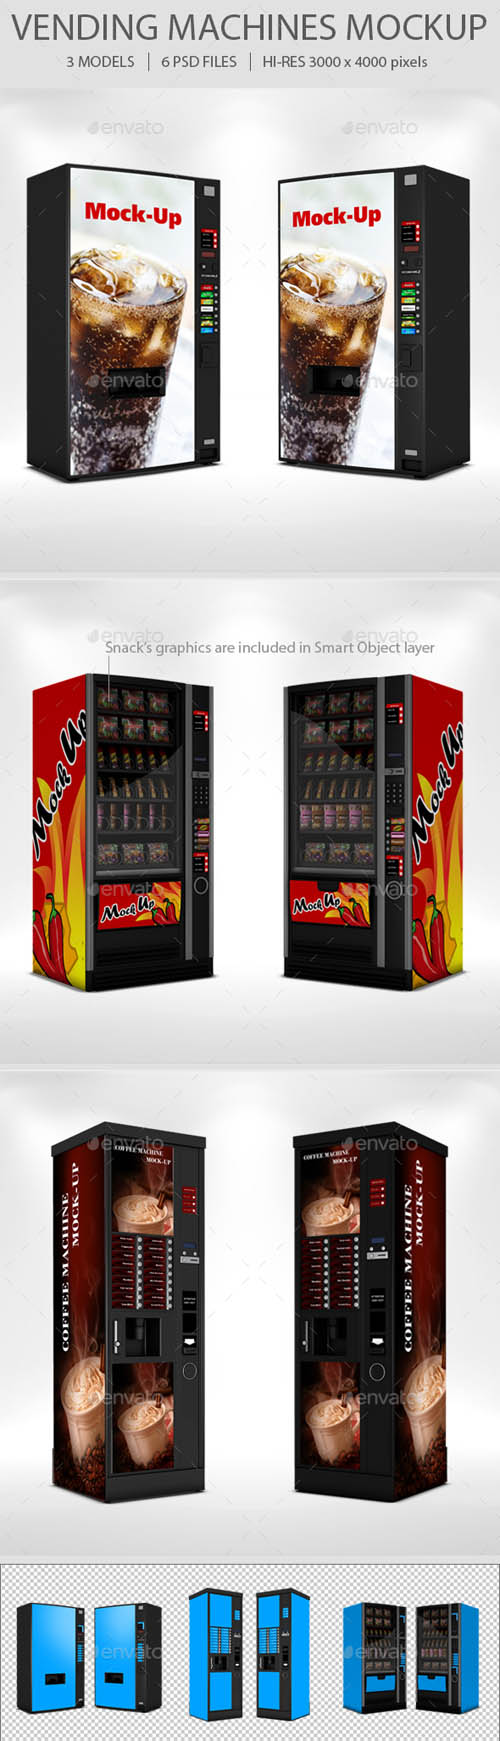 GR - Vending Machine Mockup Set 19037242